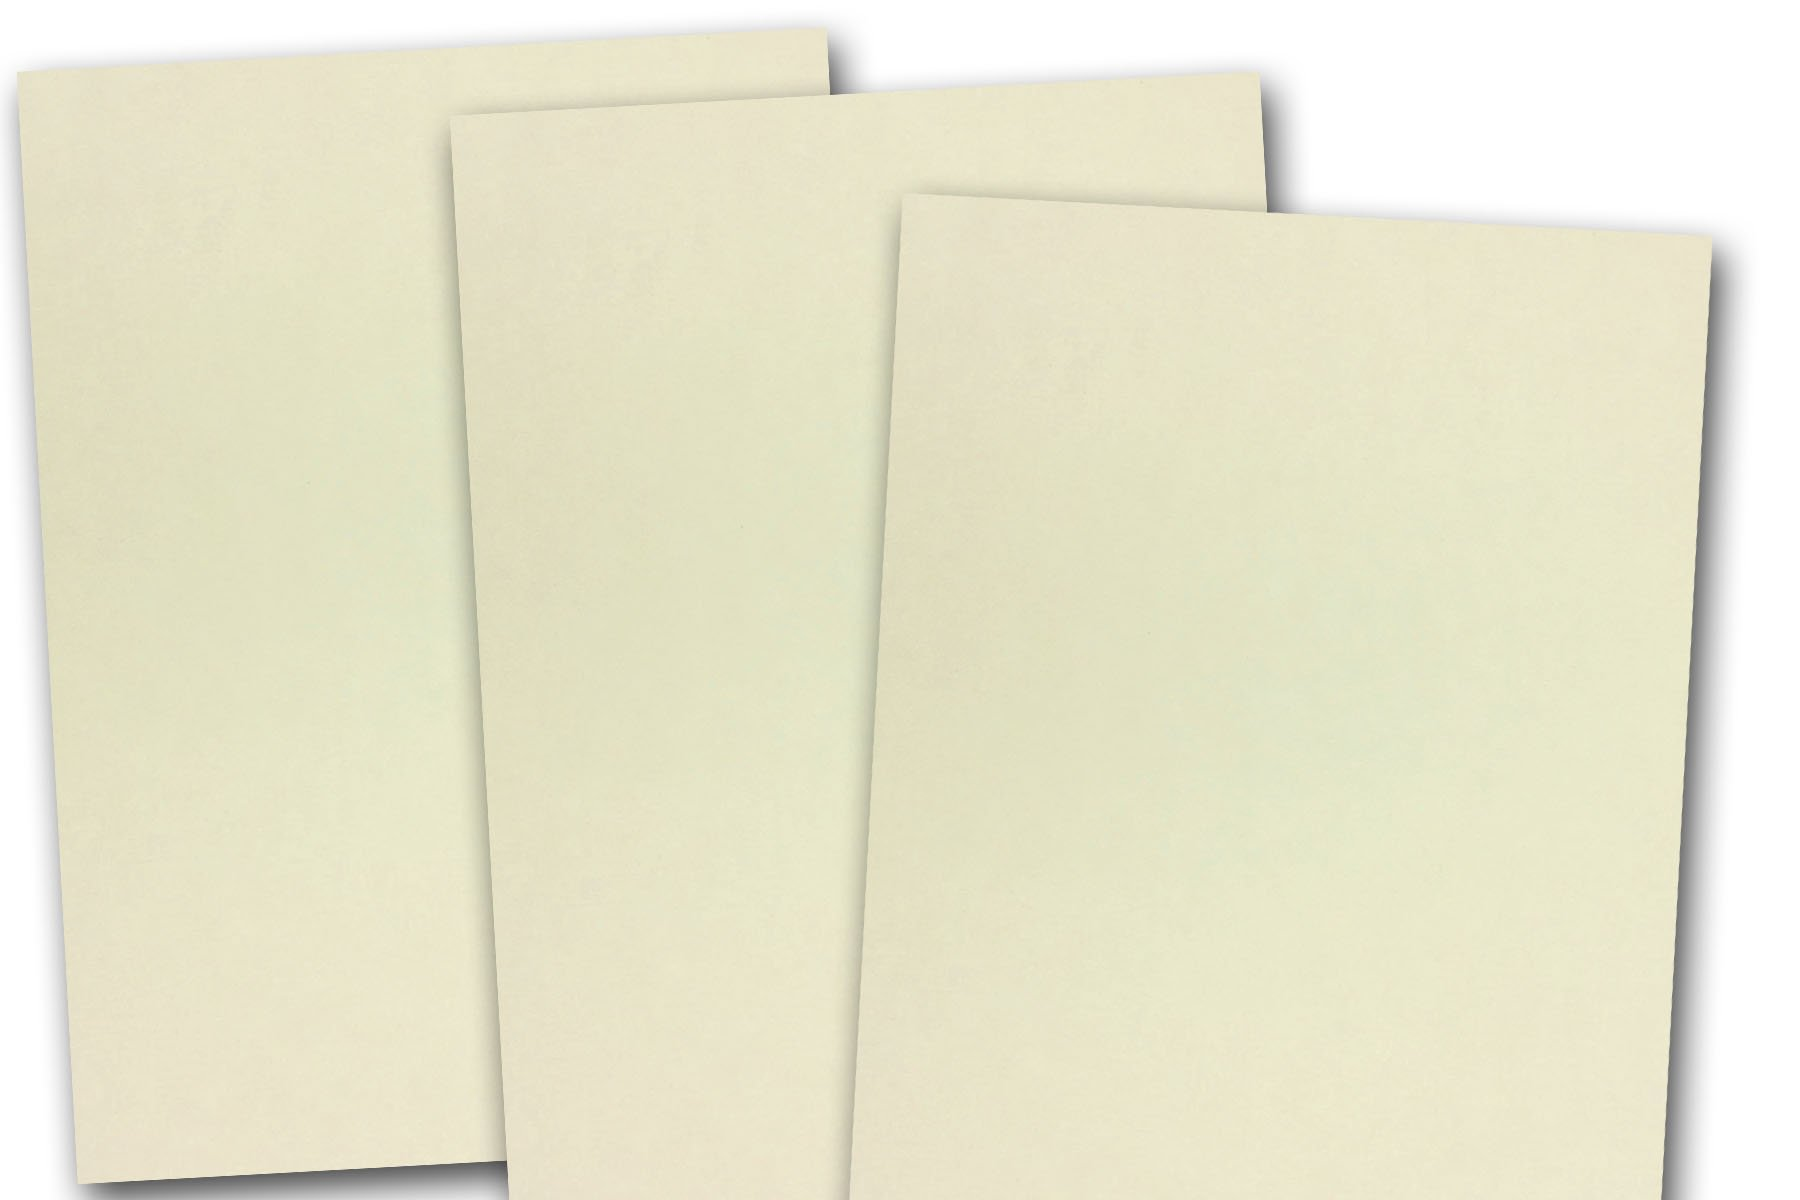 Discount Lightweight 4'' x 6'' Smooth Finish Card Stock - Great for printing (500 Pack, Natural)